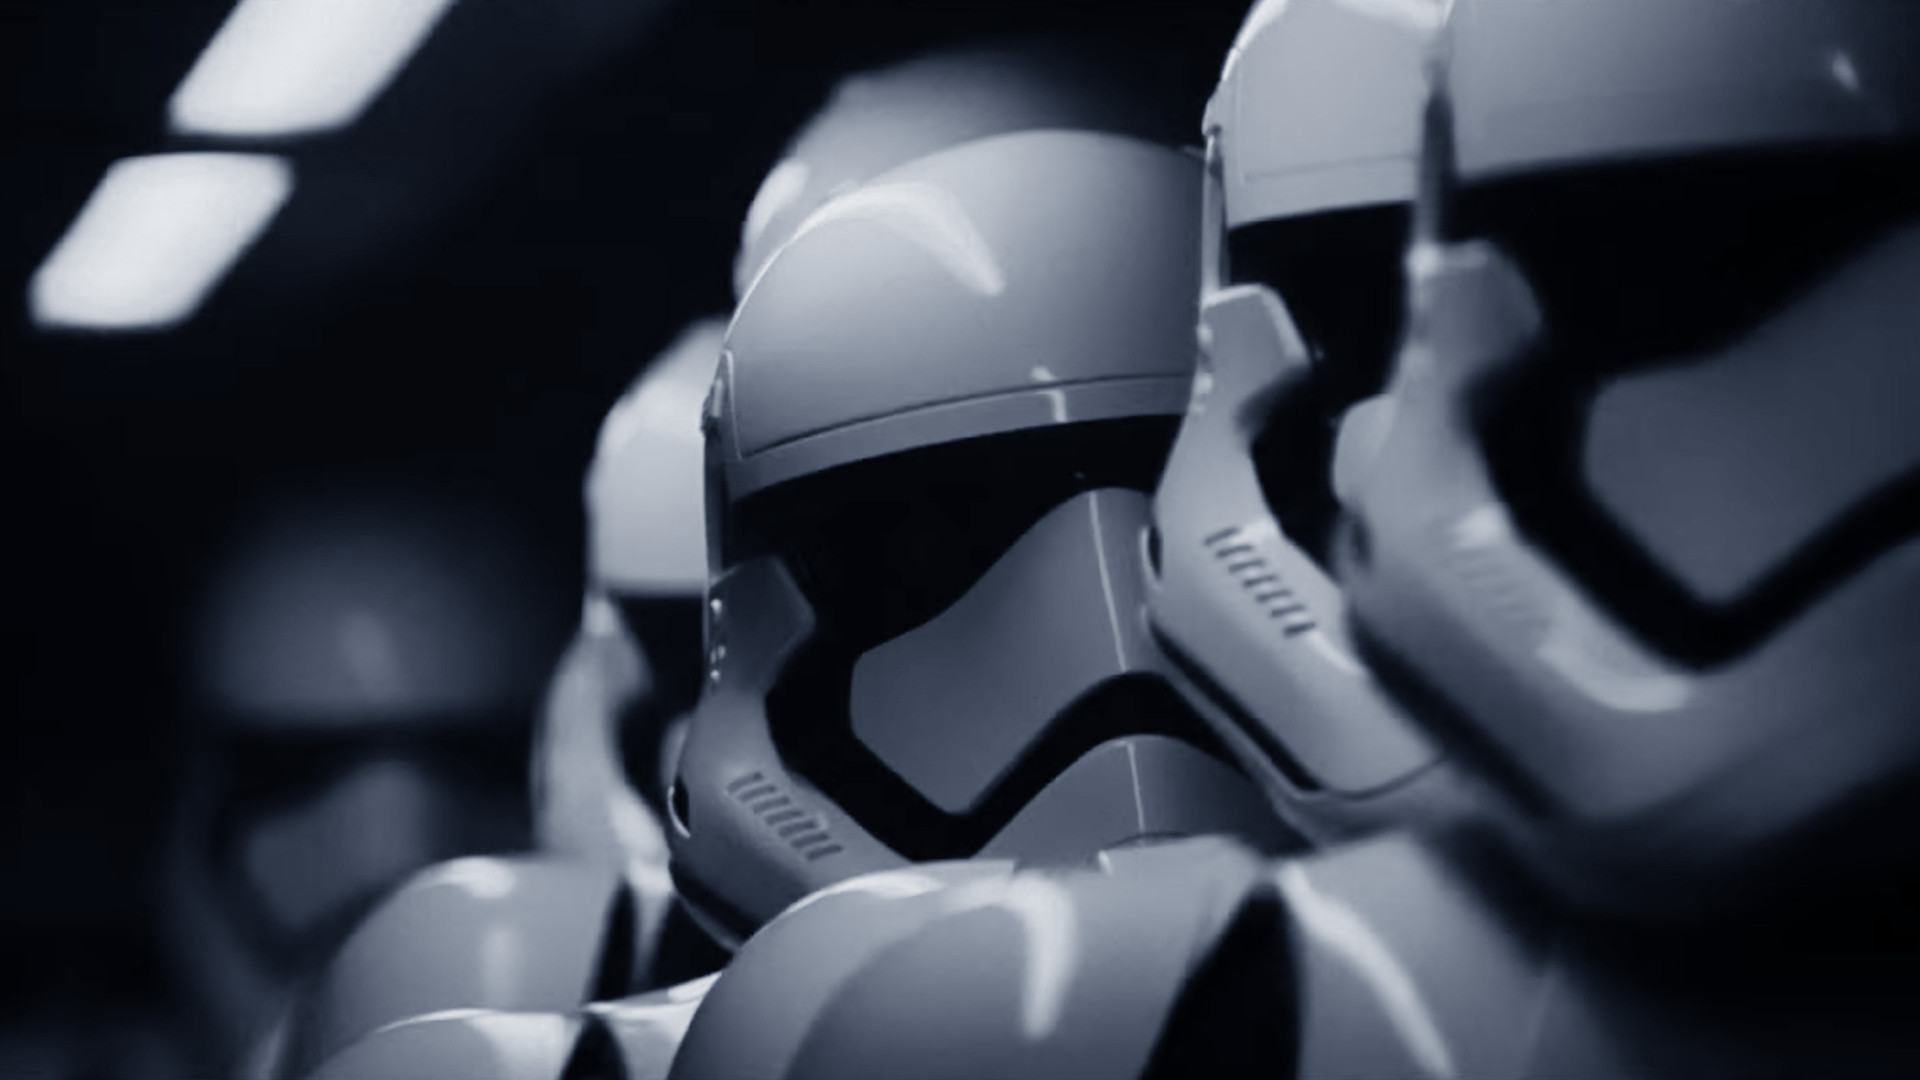 The Force Awakens Stormtroopers Wallpaper